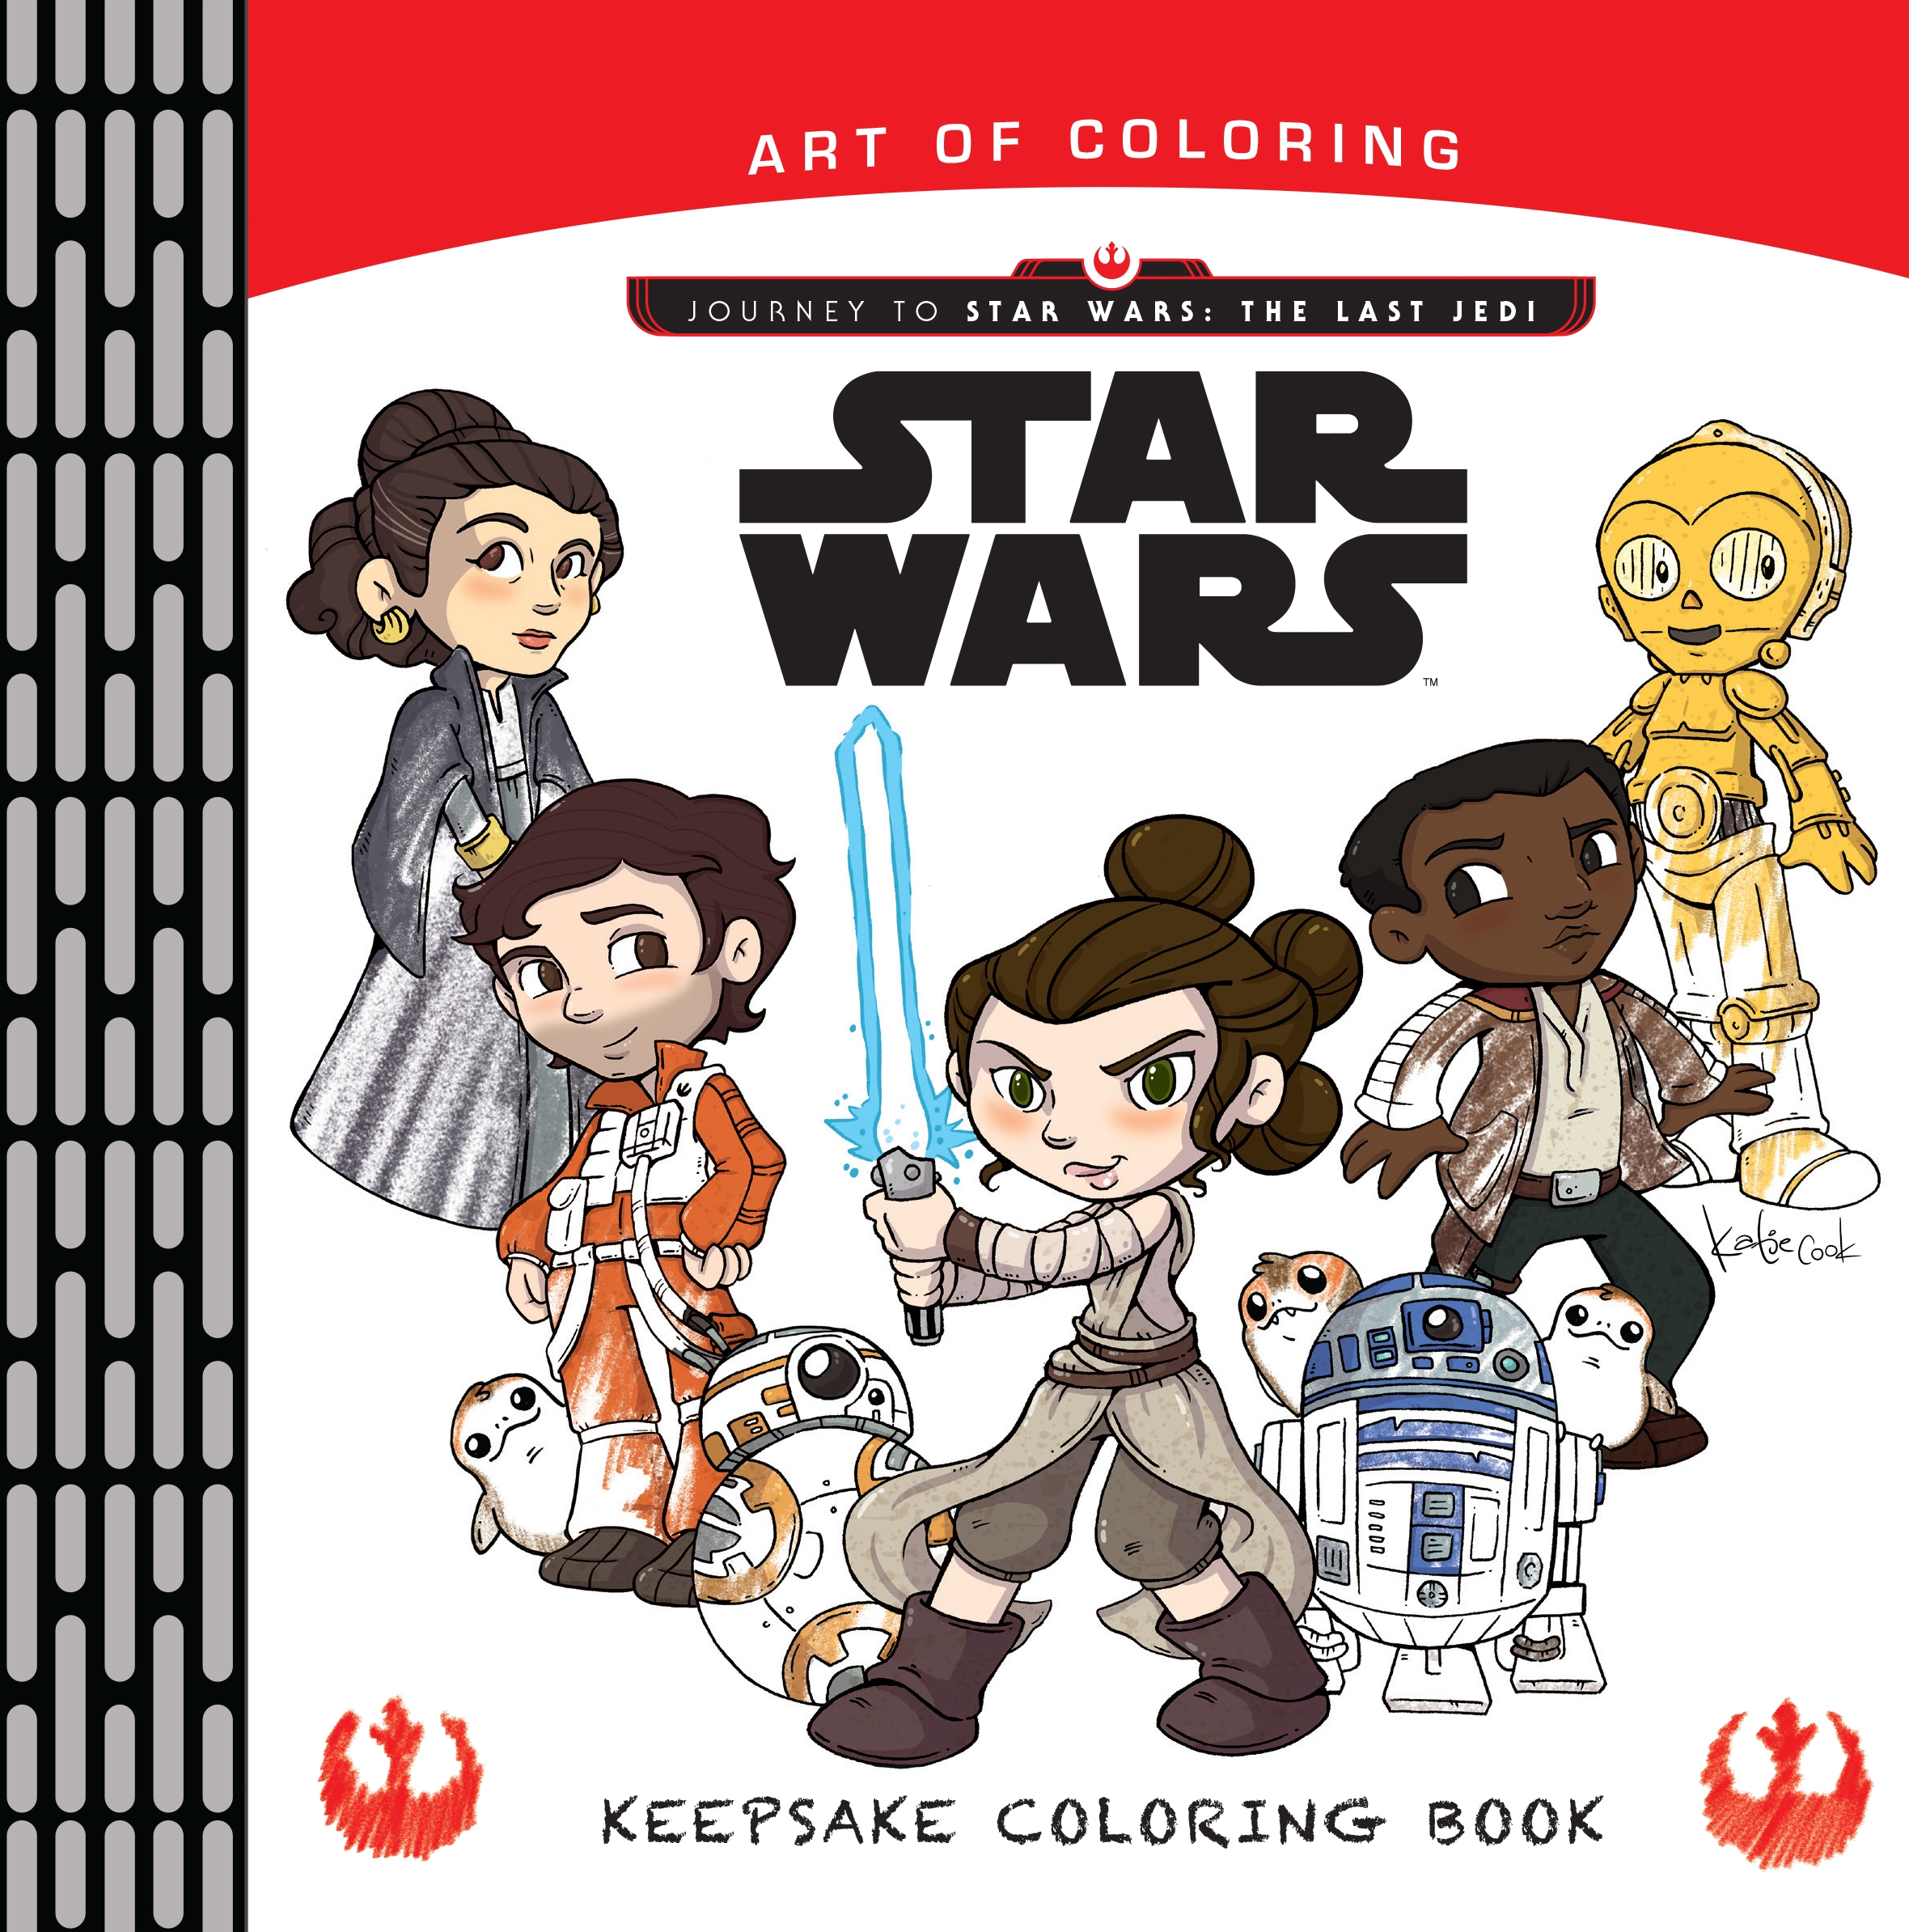 Keepsake Coloring new cover with Porgs.jpg